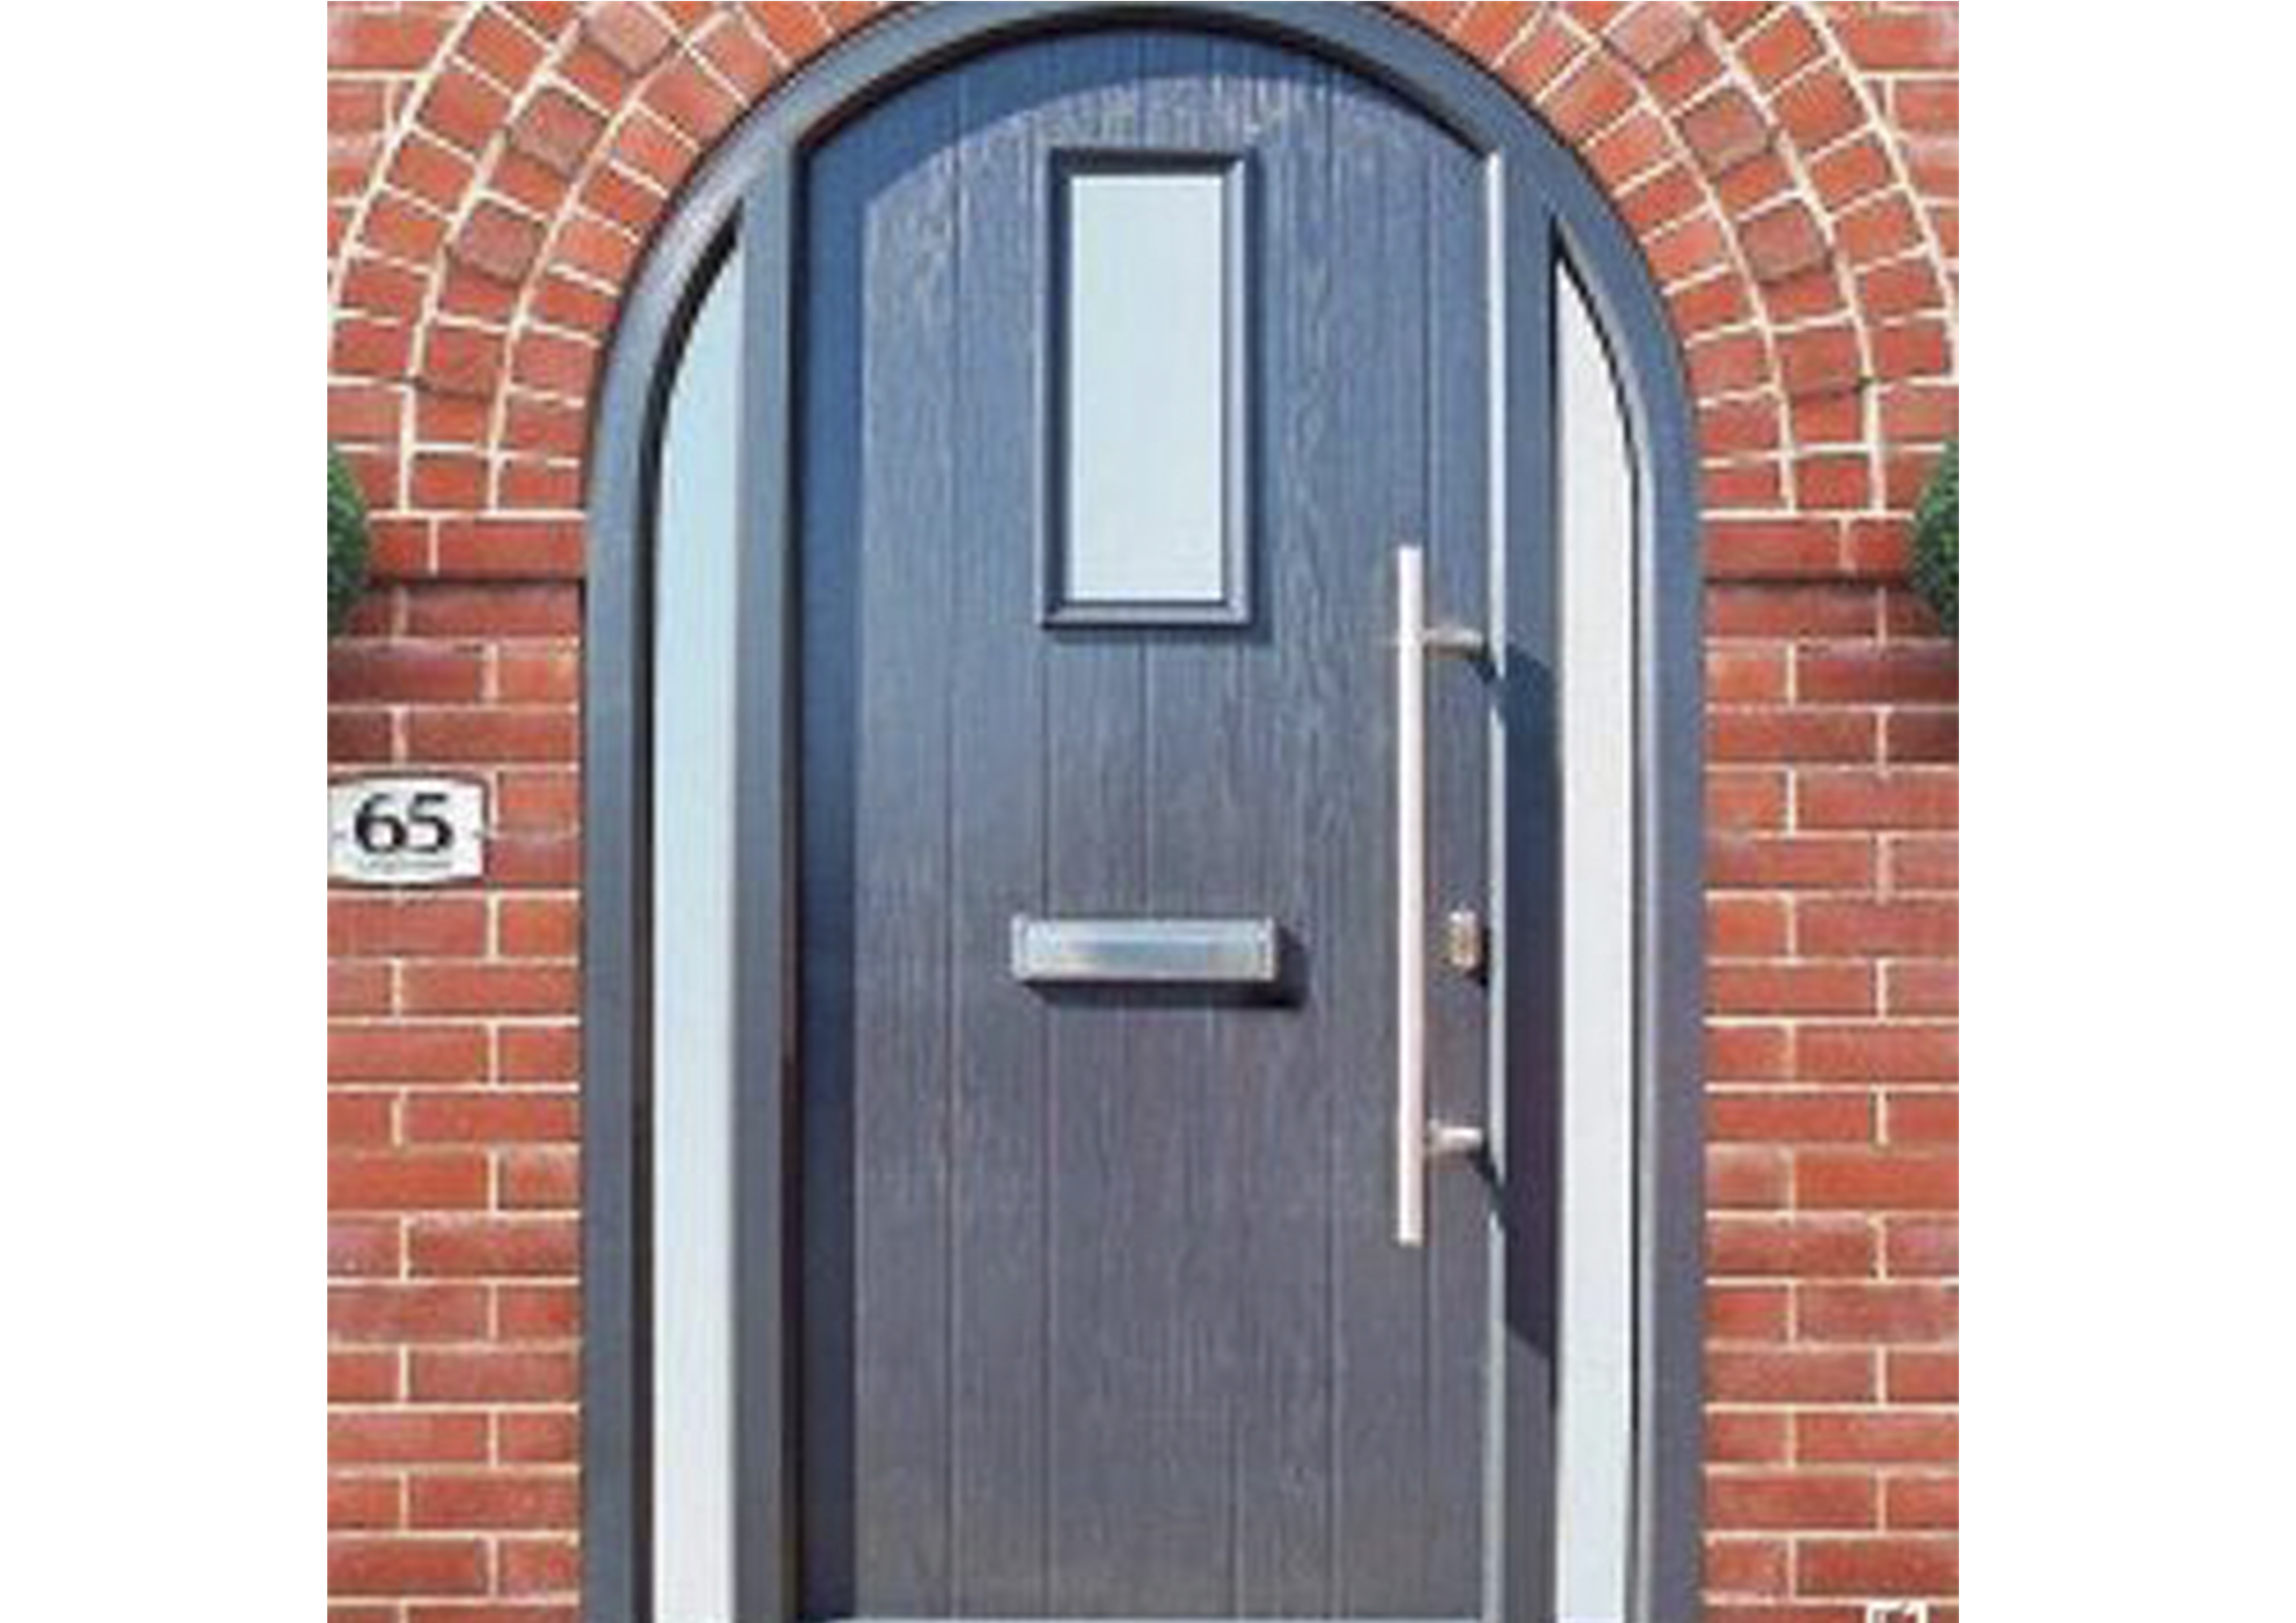 Arched Composite Doors exclusive to Force 8